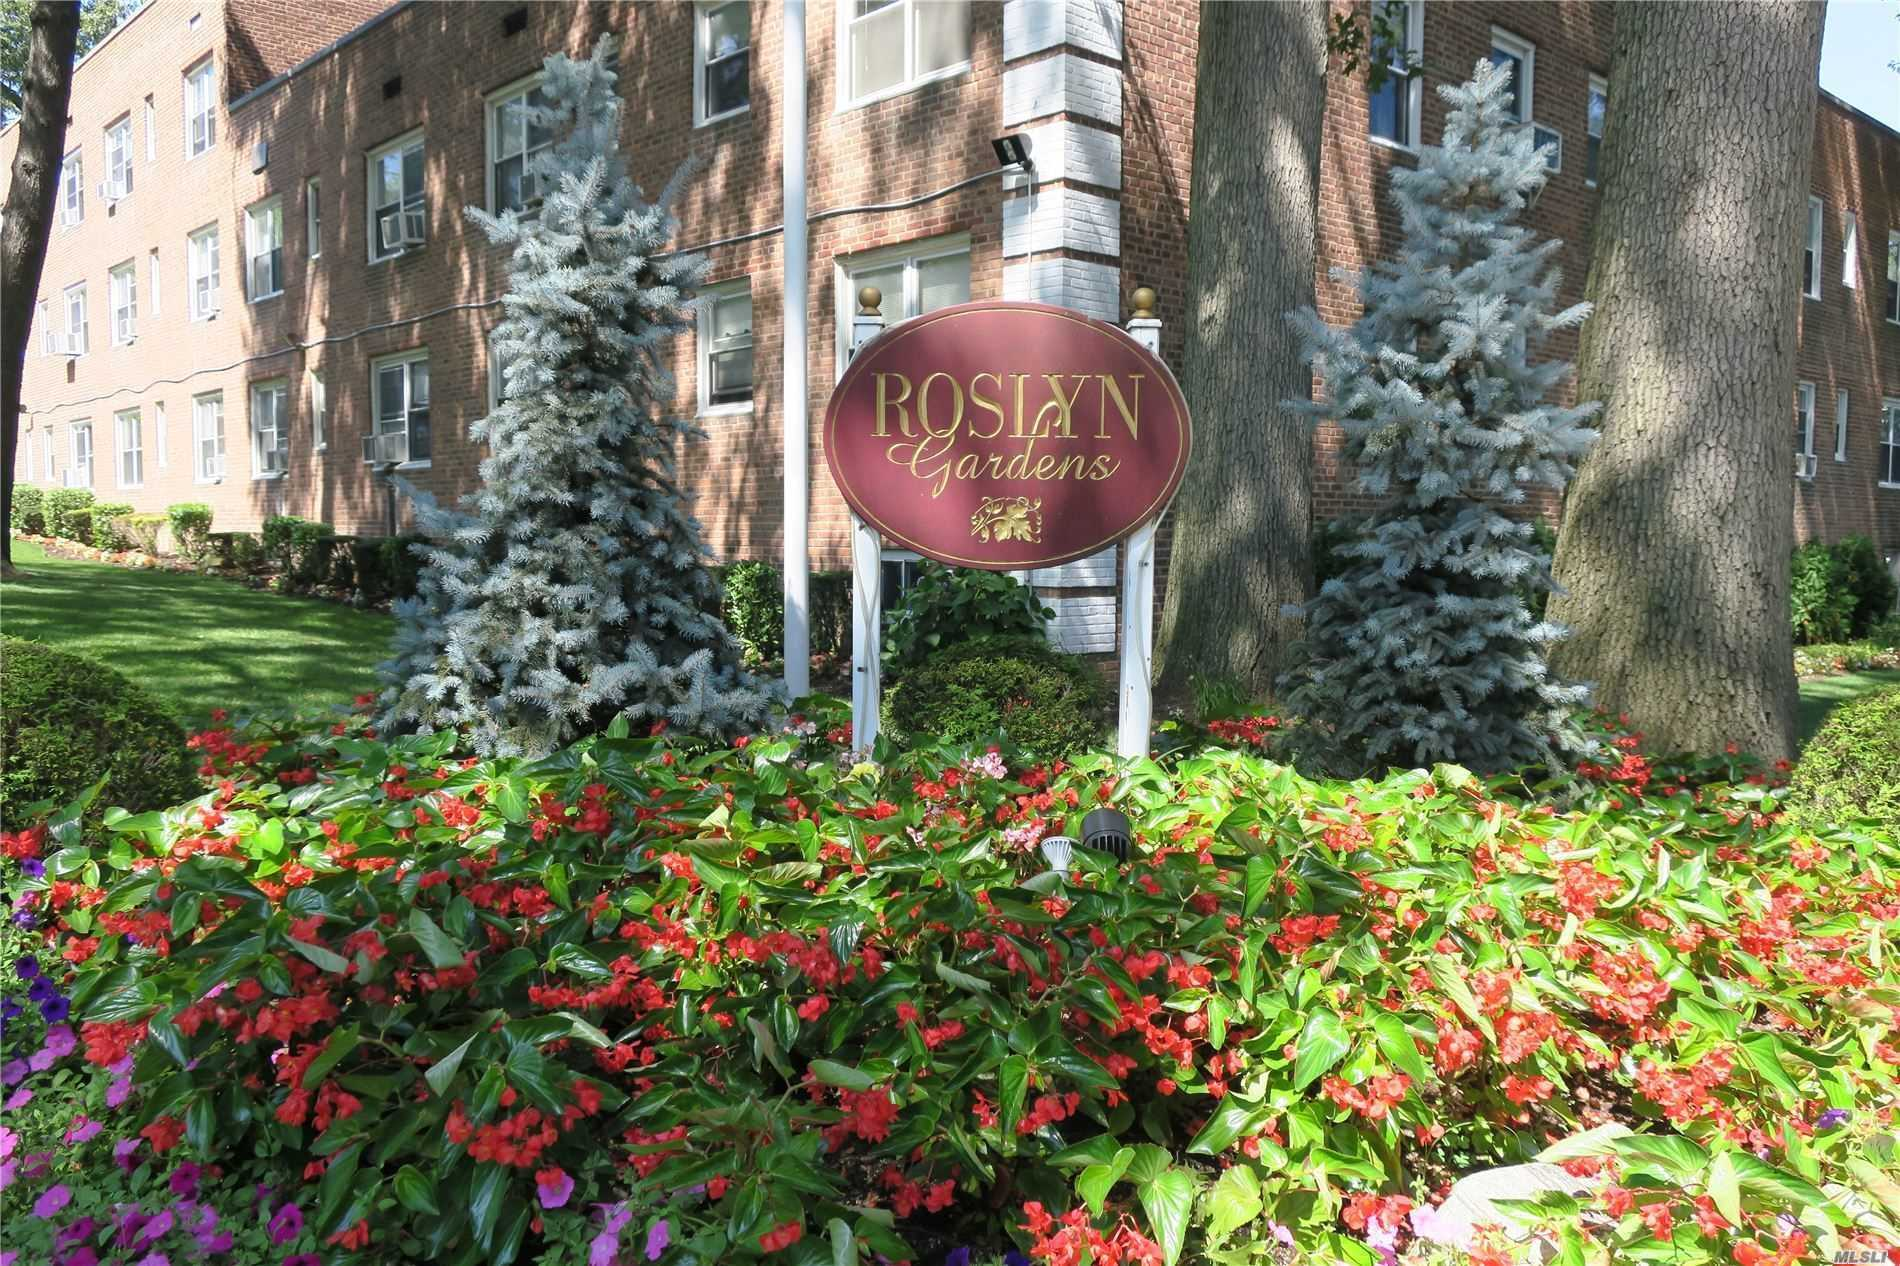 Property for sale at 23 Edwards St Unit 1C, Roslyn Heights,  New York 11577